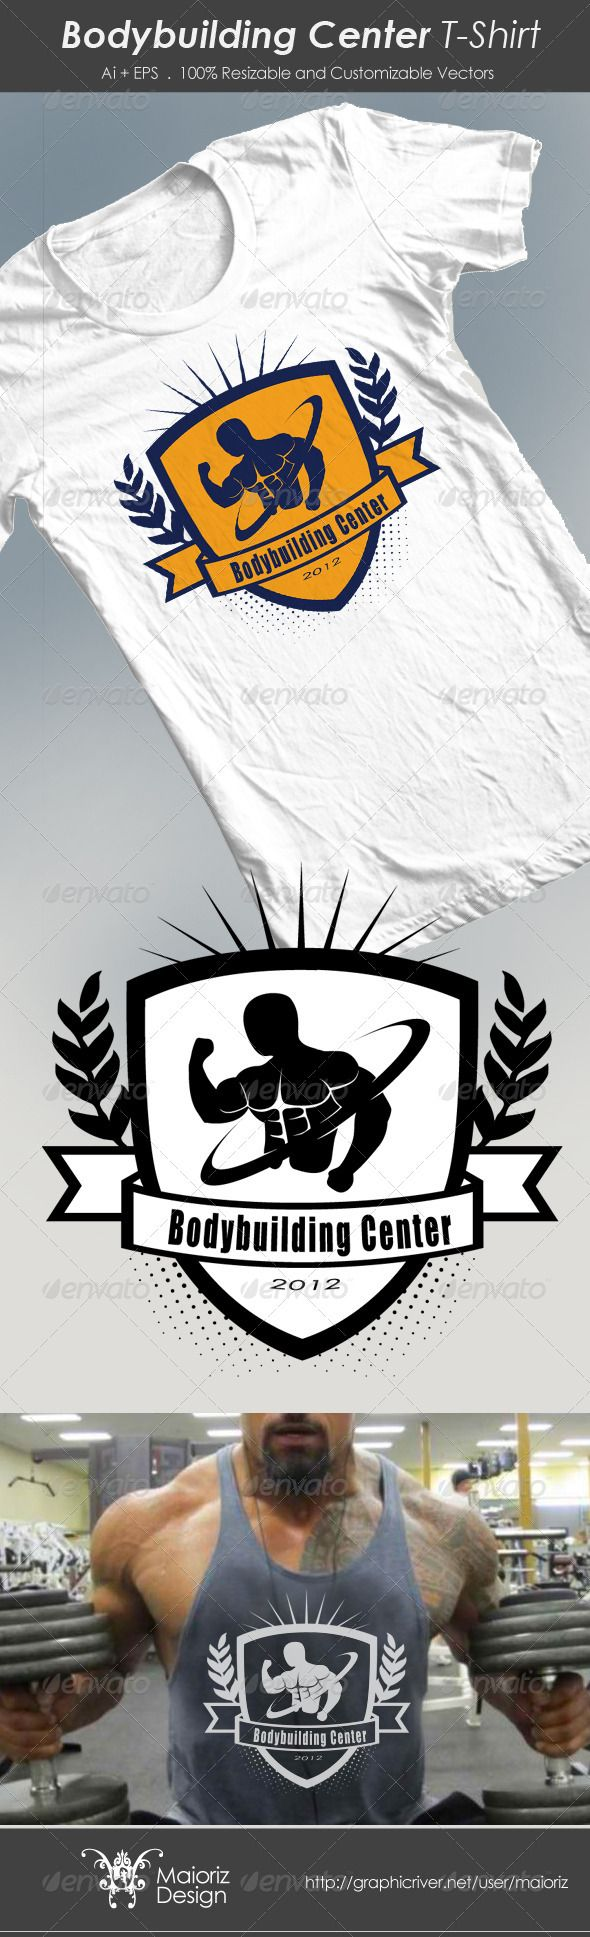 Design t shirt on mac - Bodybuilding Center Tshirt